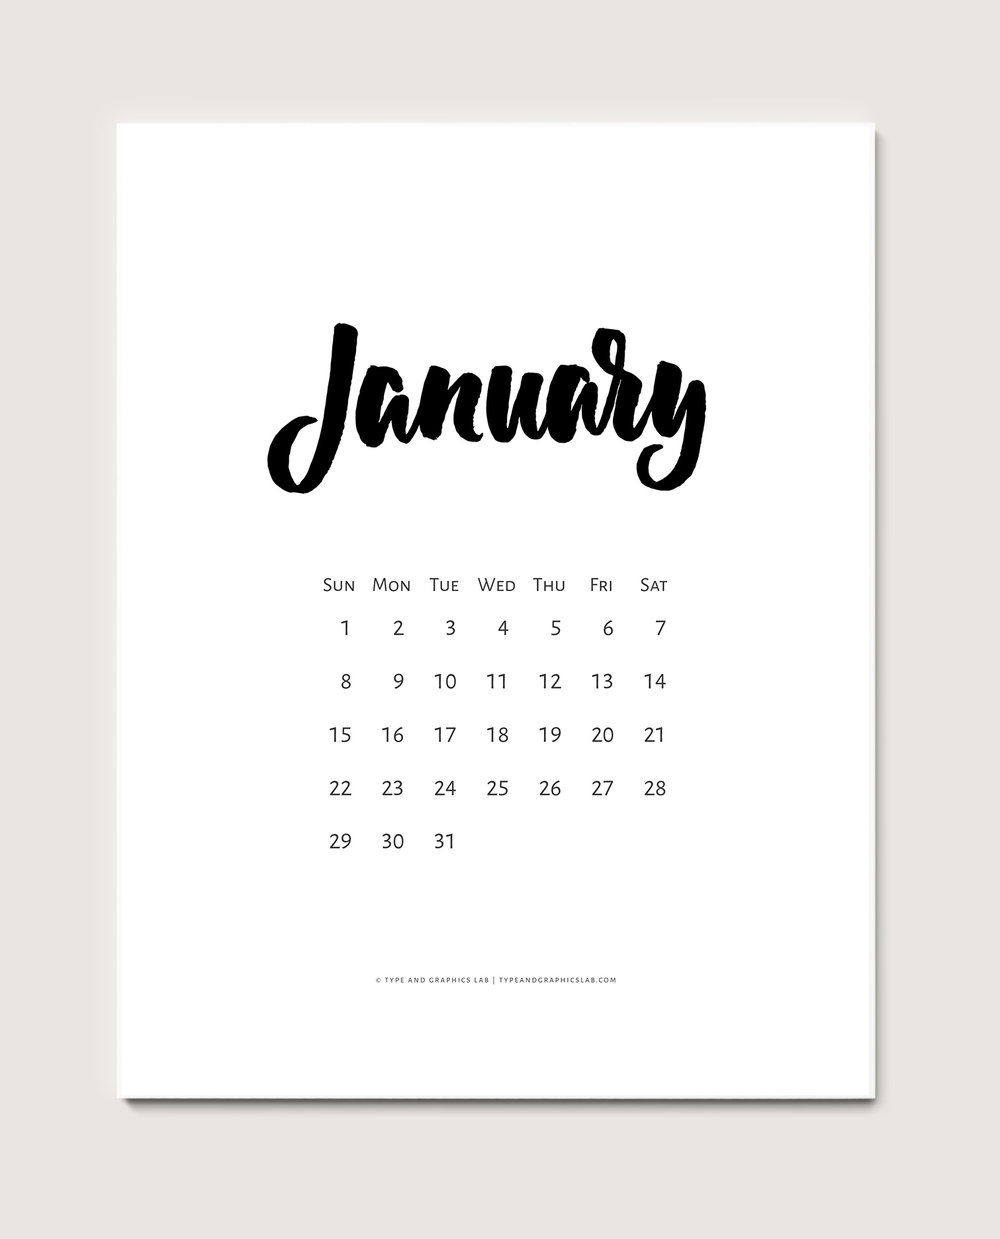 Download a free printable calendar for January 2017. For personal use only |©typeandgraphicslab.com